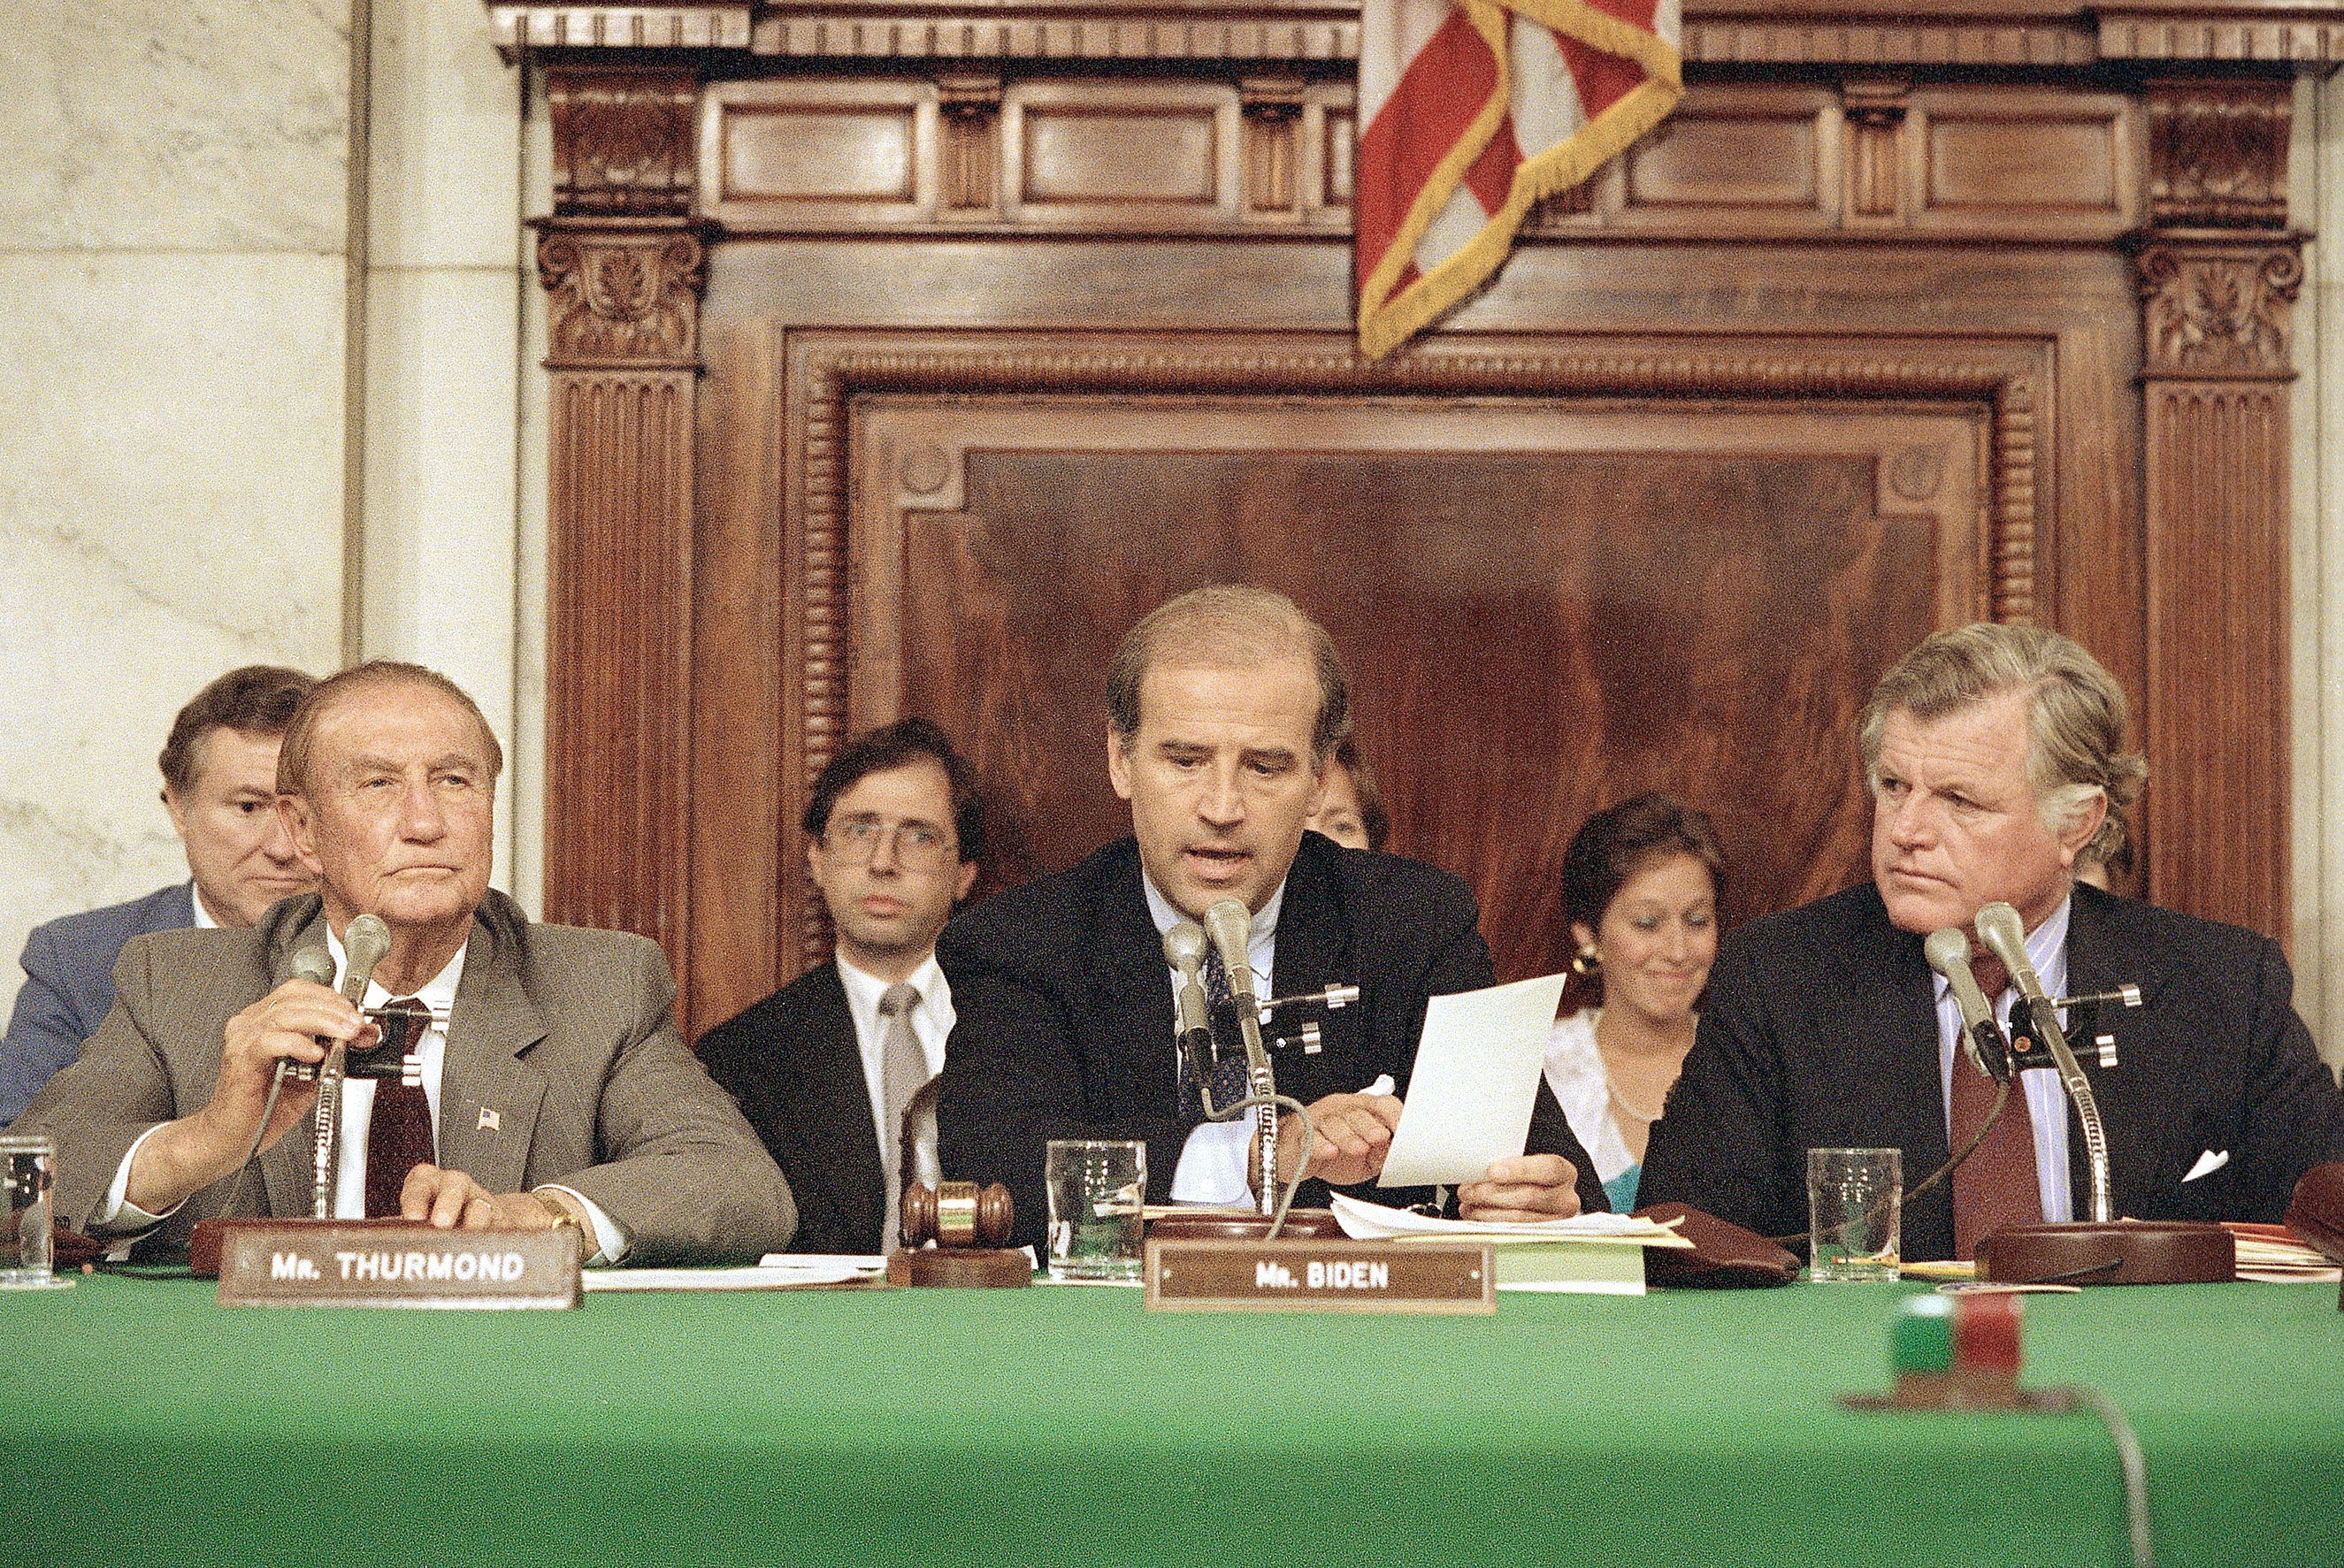 Senate Judiciary Committee Chairman Joe Biden (center) reads from his tally sheet following the committee's voice vote to recommend Robert H. Bork for the Supreme Court on Oct. 6, 1987 in Washington. Senator Strom Thurmond (left) and Senator Edward Kennedy (right) listen.